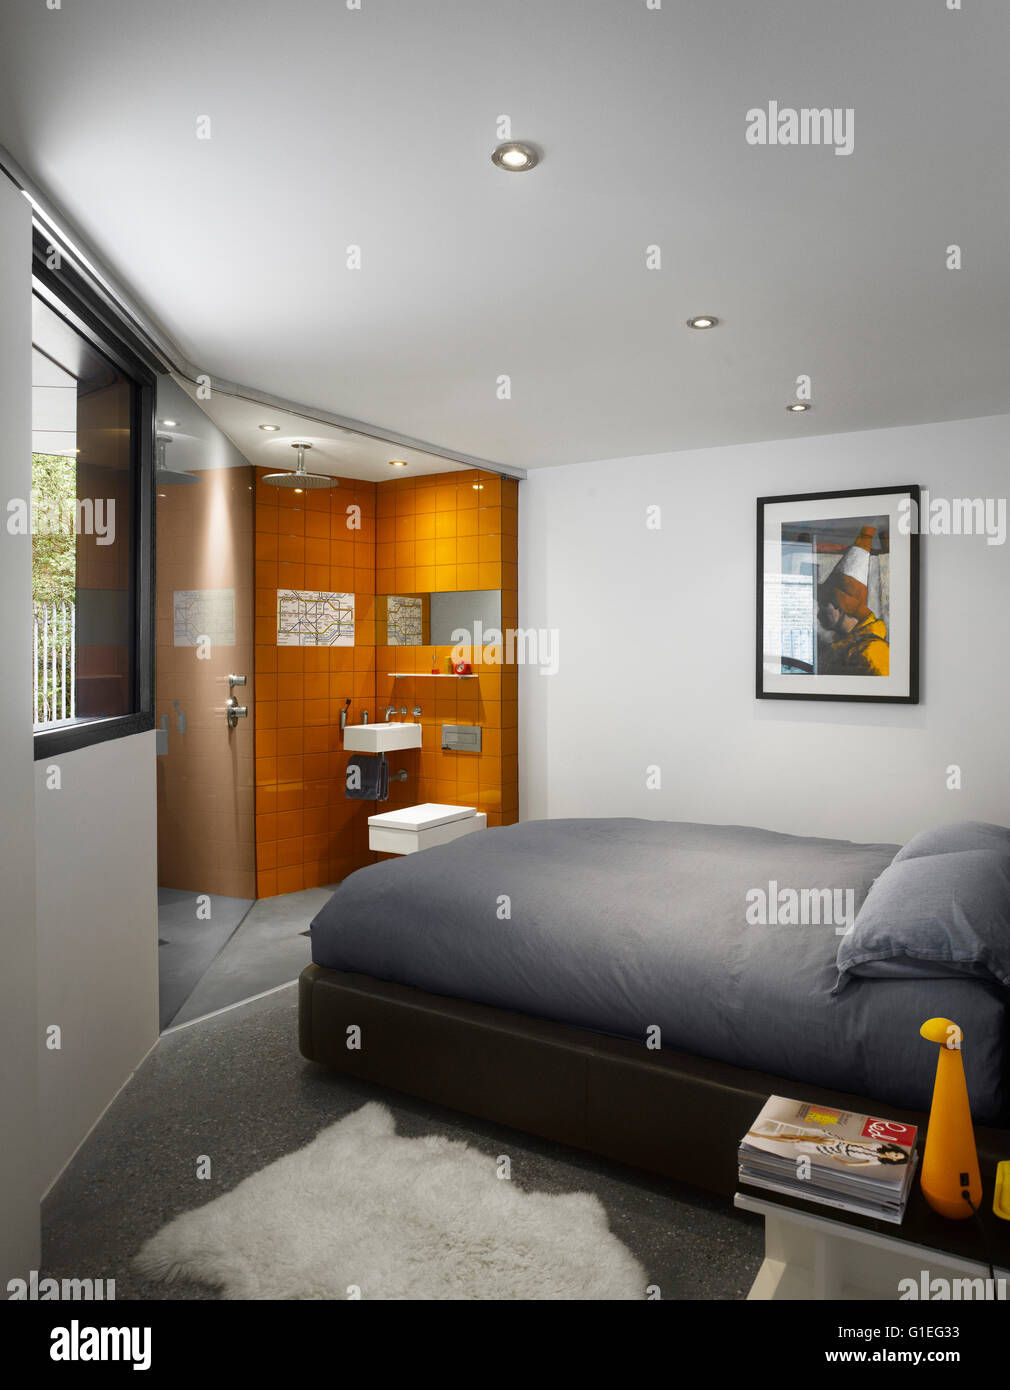 Wimbledon Village House in London. Moderne Schlafzimmer mit offenen Bad. Stockbild